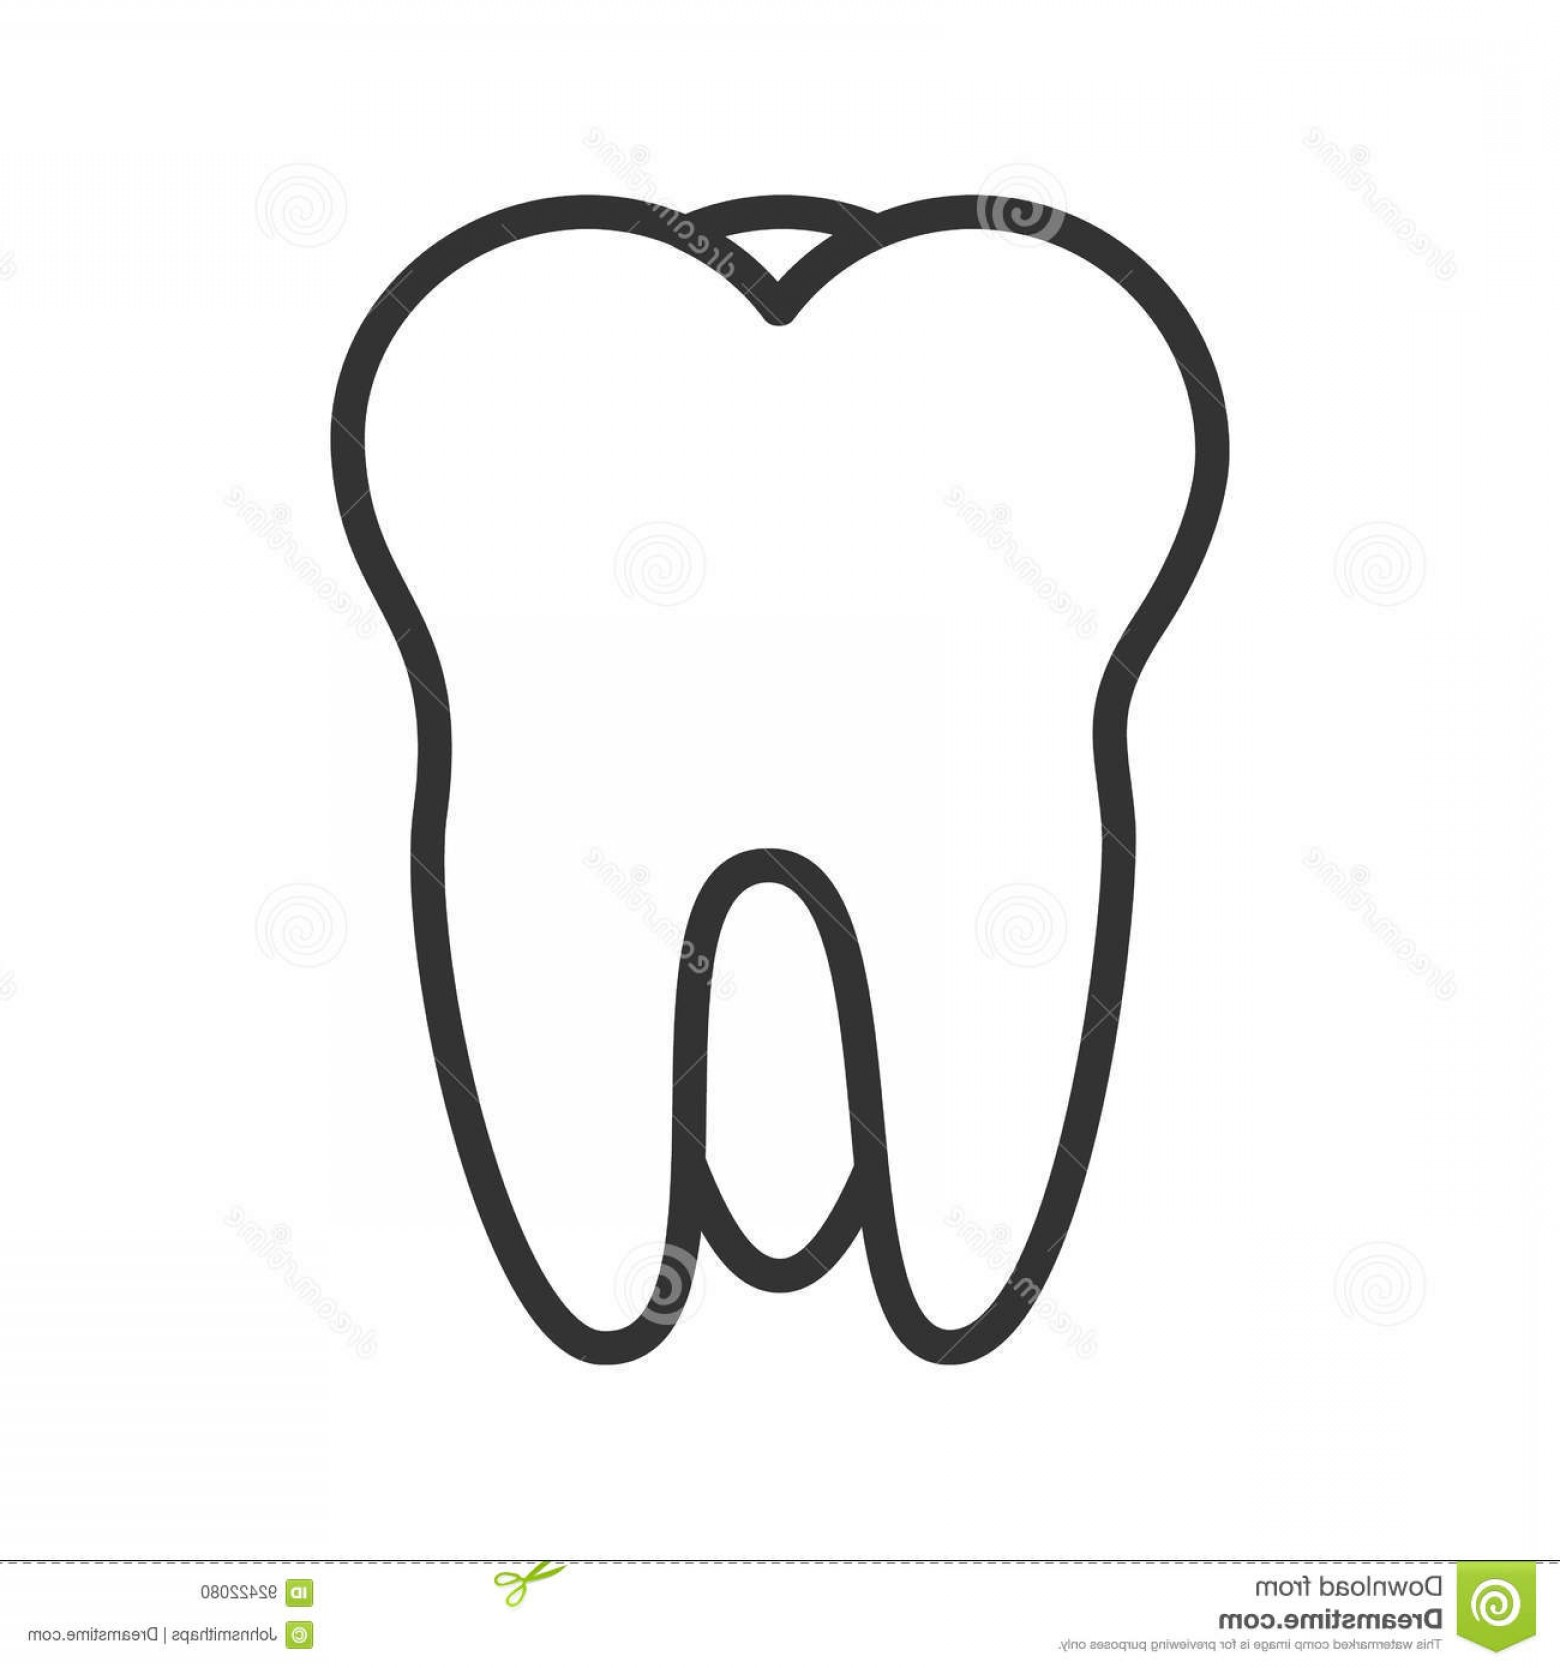 Tooth Outline Vector: Stock Illustration Tooth Linear Icon Thin Line Illustration Vector Isolated Outline Drawing Image